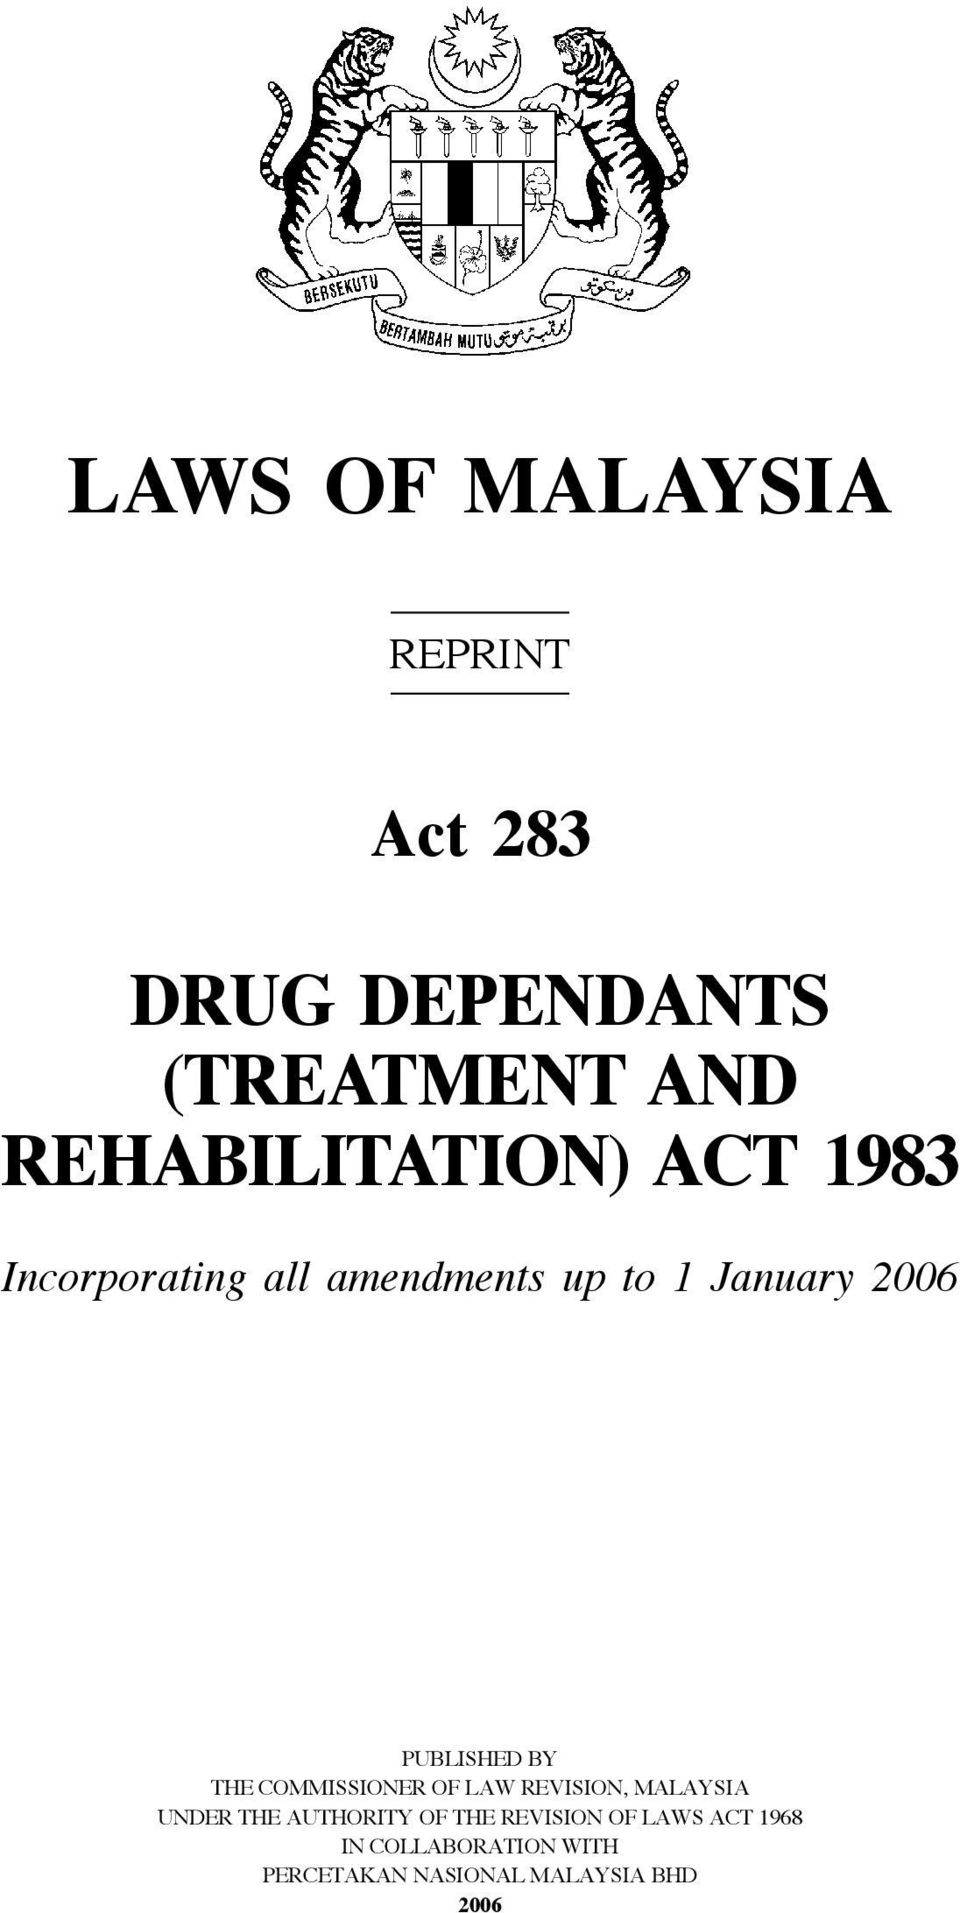 January 2006 PUBLISHED BY THE COMMISSIONER OF LAW REVISION, MALAYSIA UNDER THE AUTHORITY